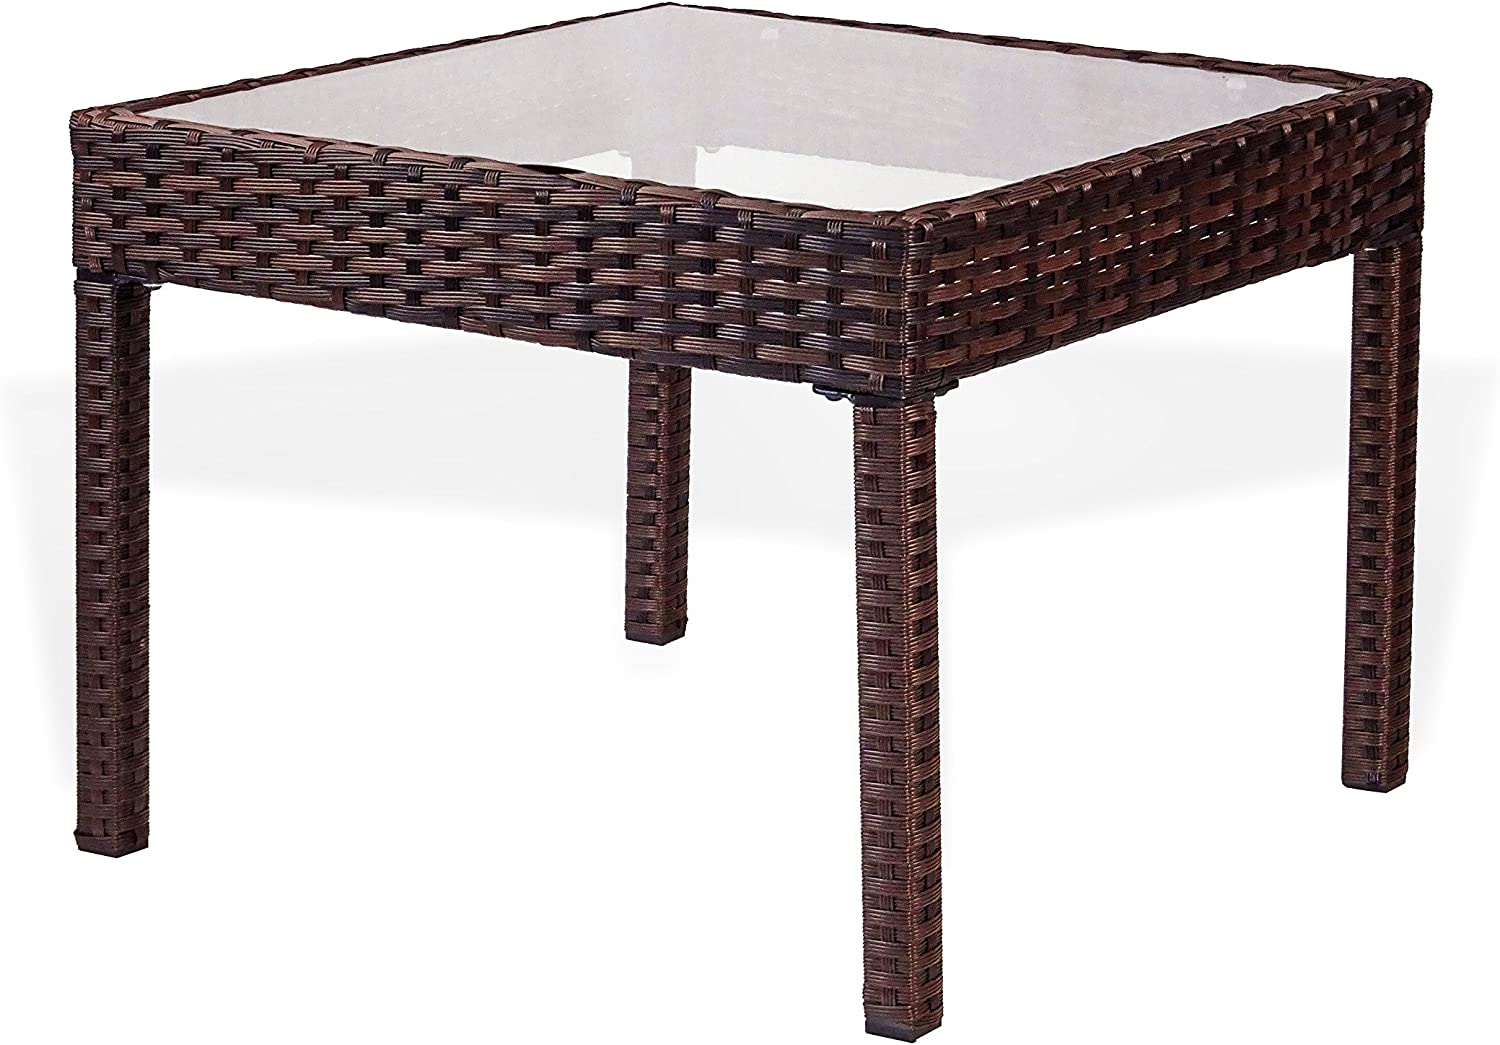 Outdoor Garden Side Table with Glass Top Brown Rattaner Patio Wicker Coffee Table